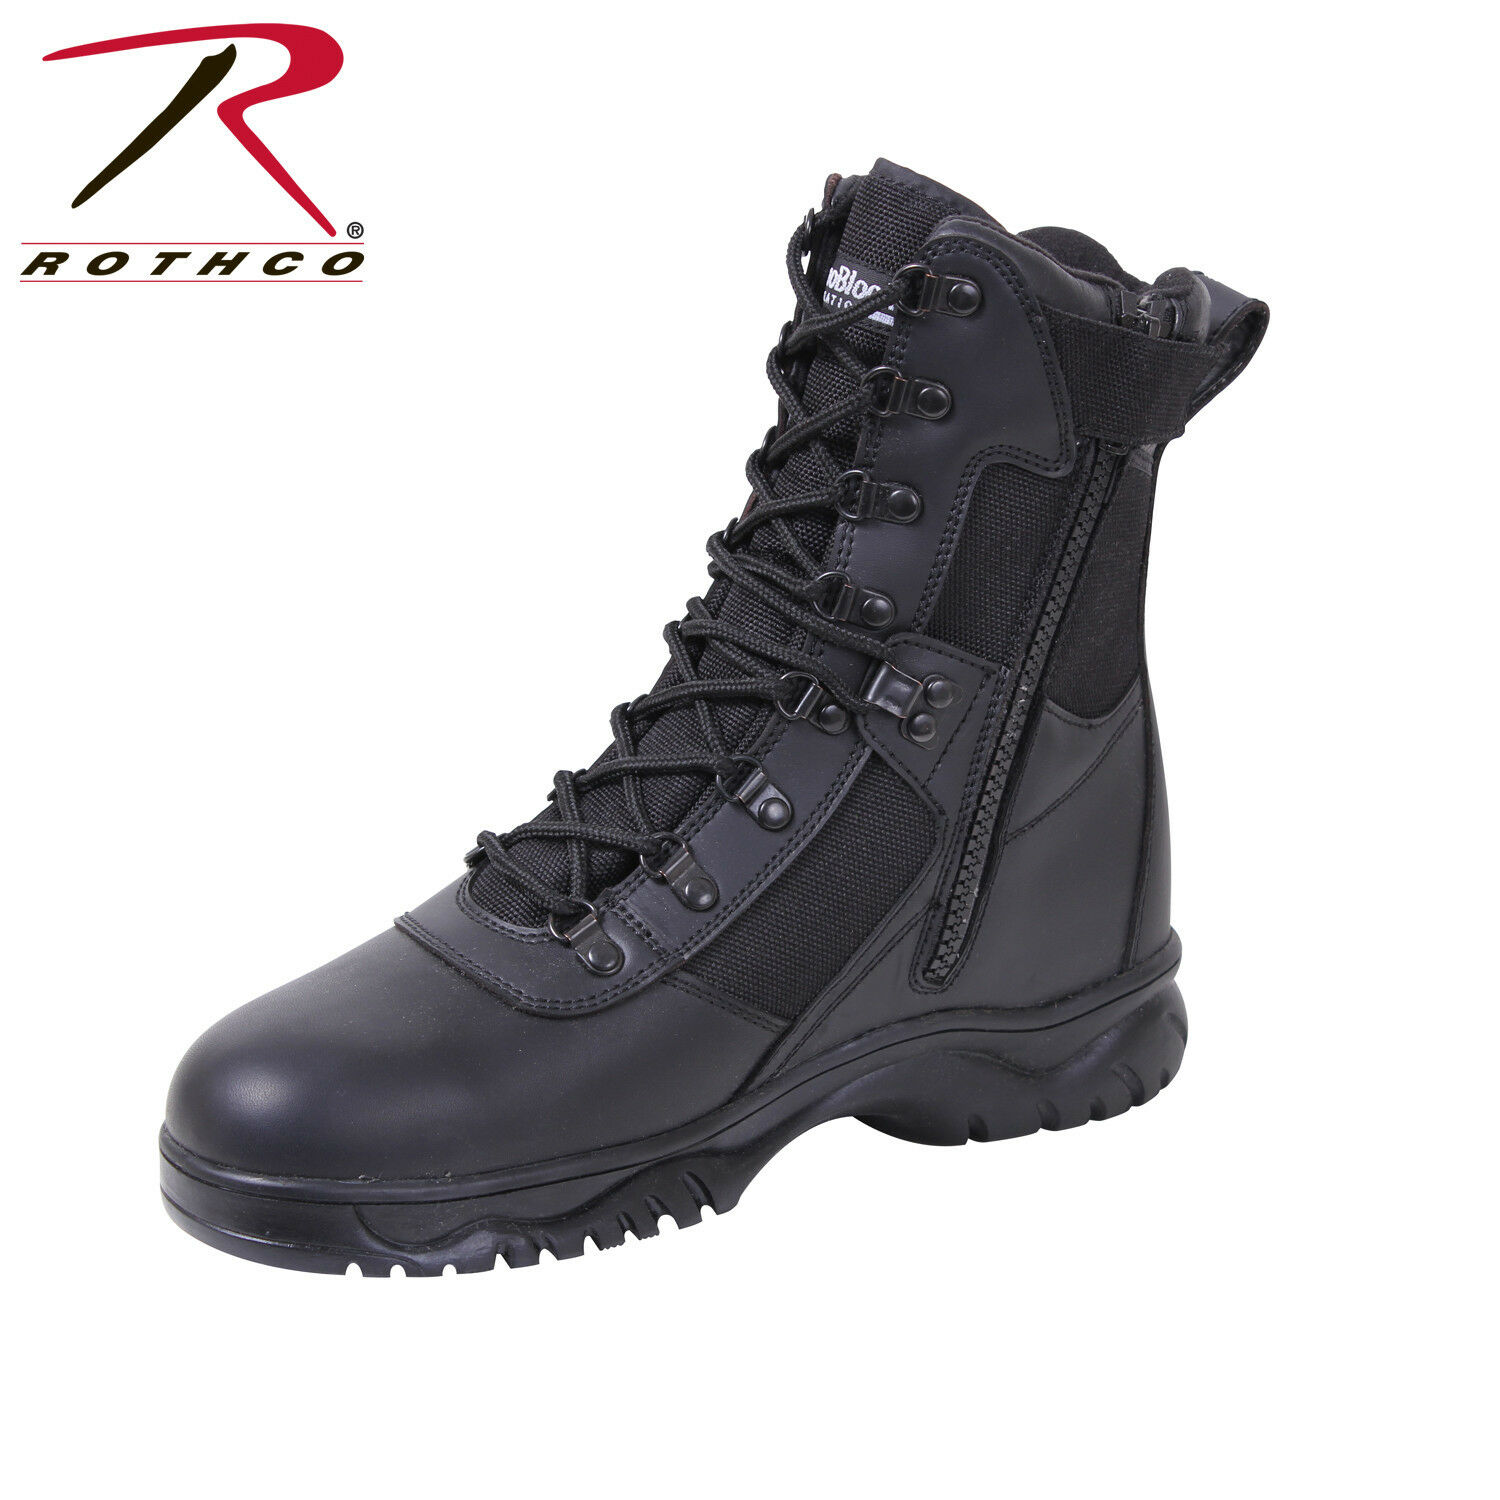 Rothco Rothco Rothco Insulated 8 Inch Side Zip Tactical Boot 3865cc